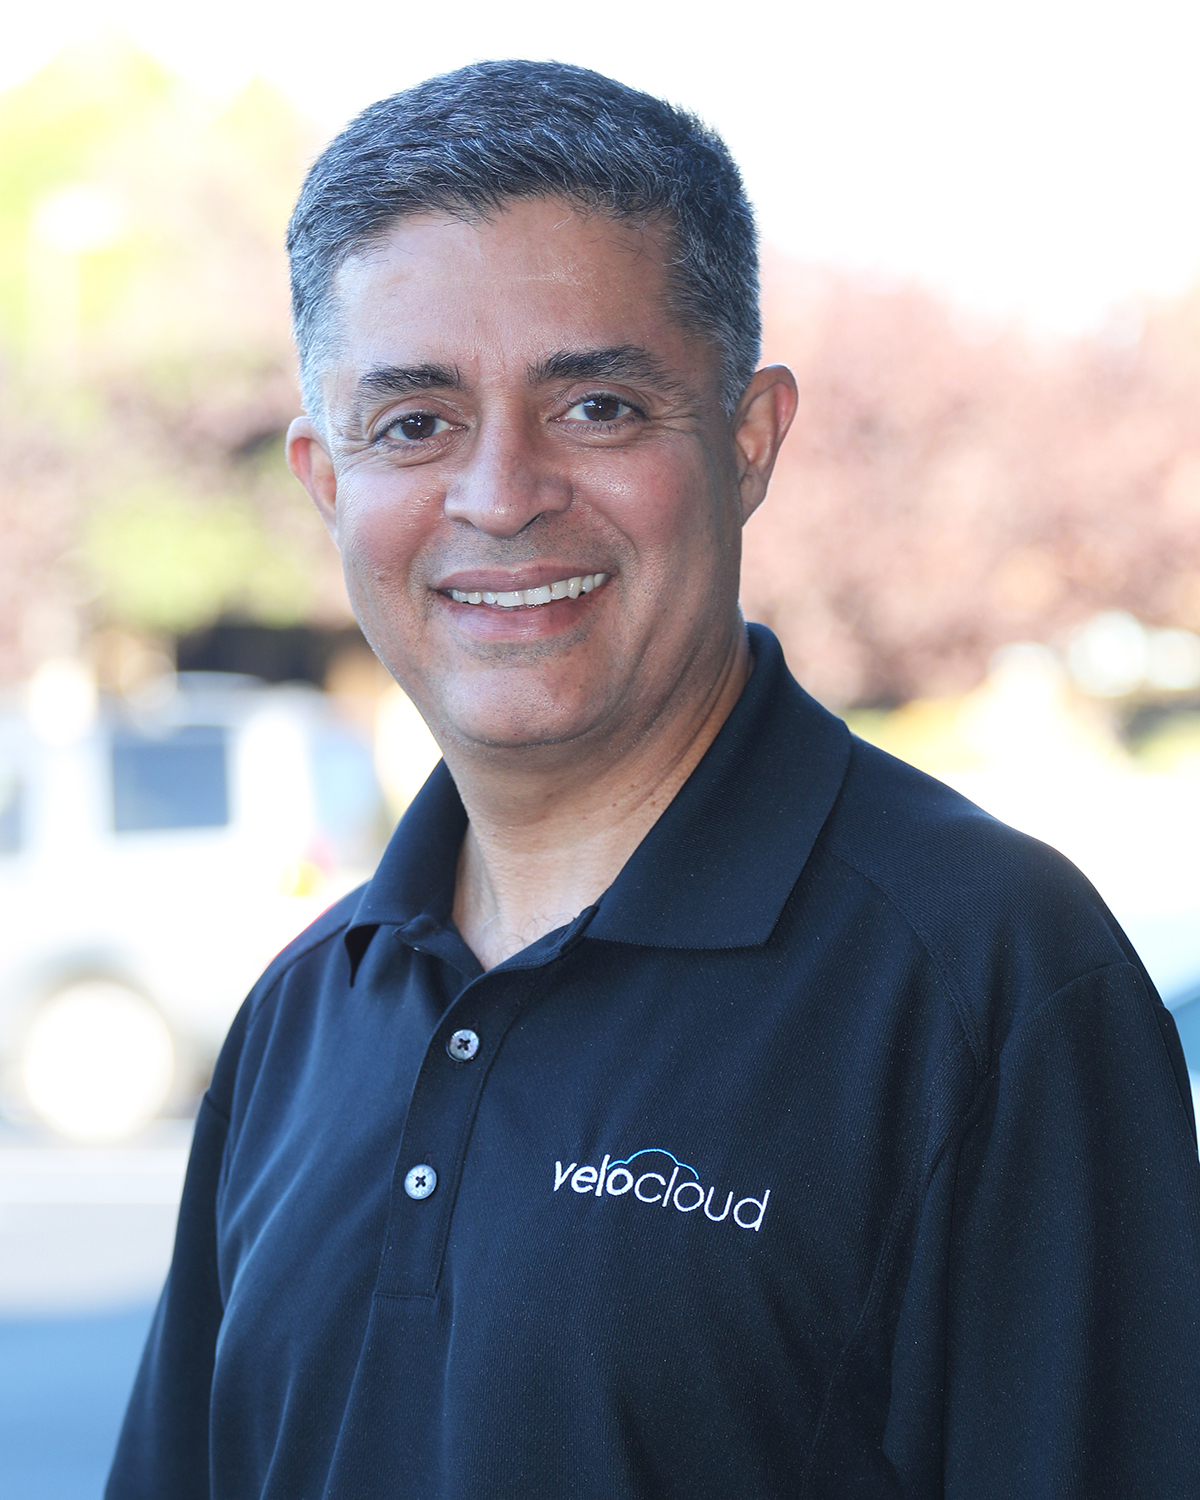 """VeloCloud CEO Sanjay Uppal will co-present a session titled """"Service Provider Managed SD-WAN Services Powered by VeloCloud and VMware vCloud NFV"""" at Mobile World Congress on Feb. 27. (Photo: Business Wire)"""